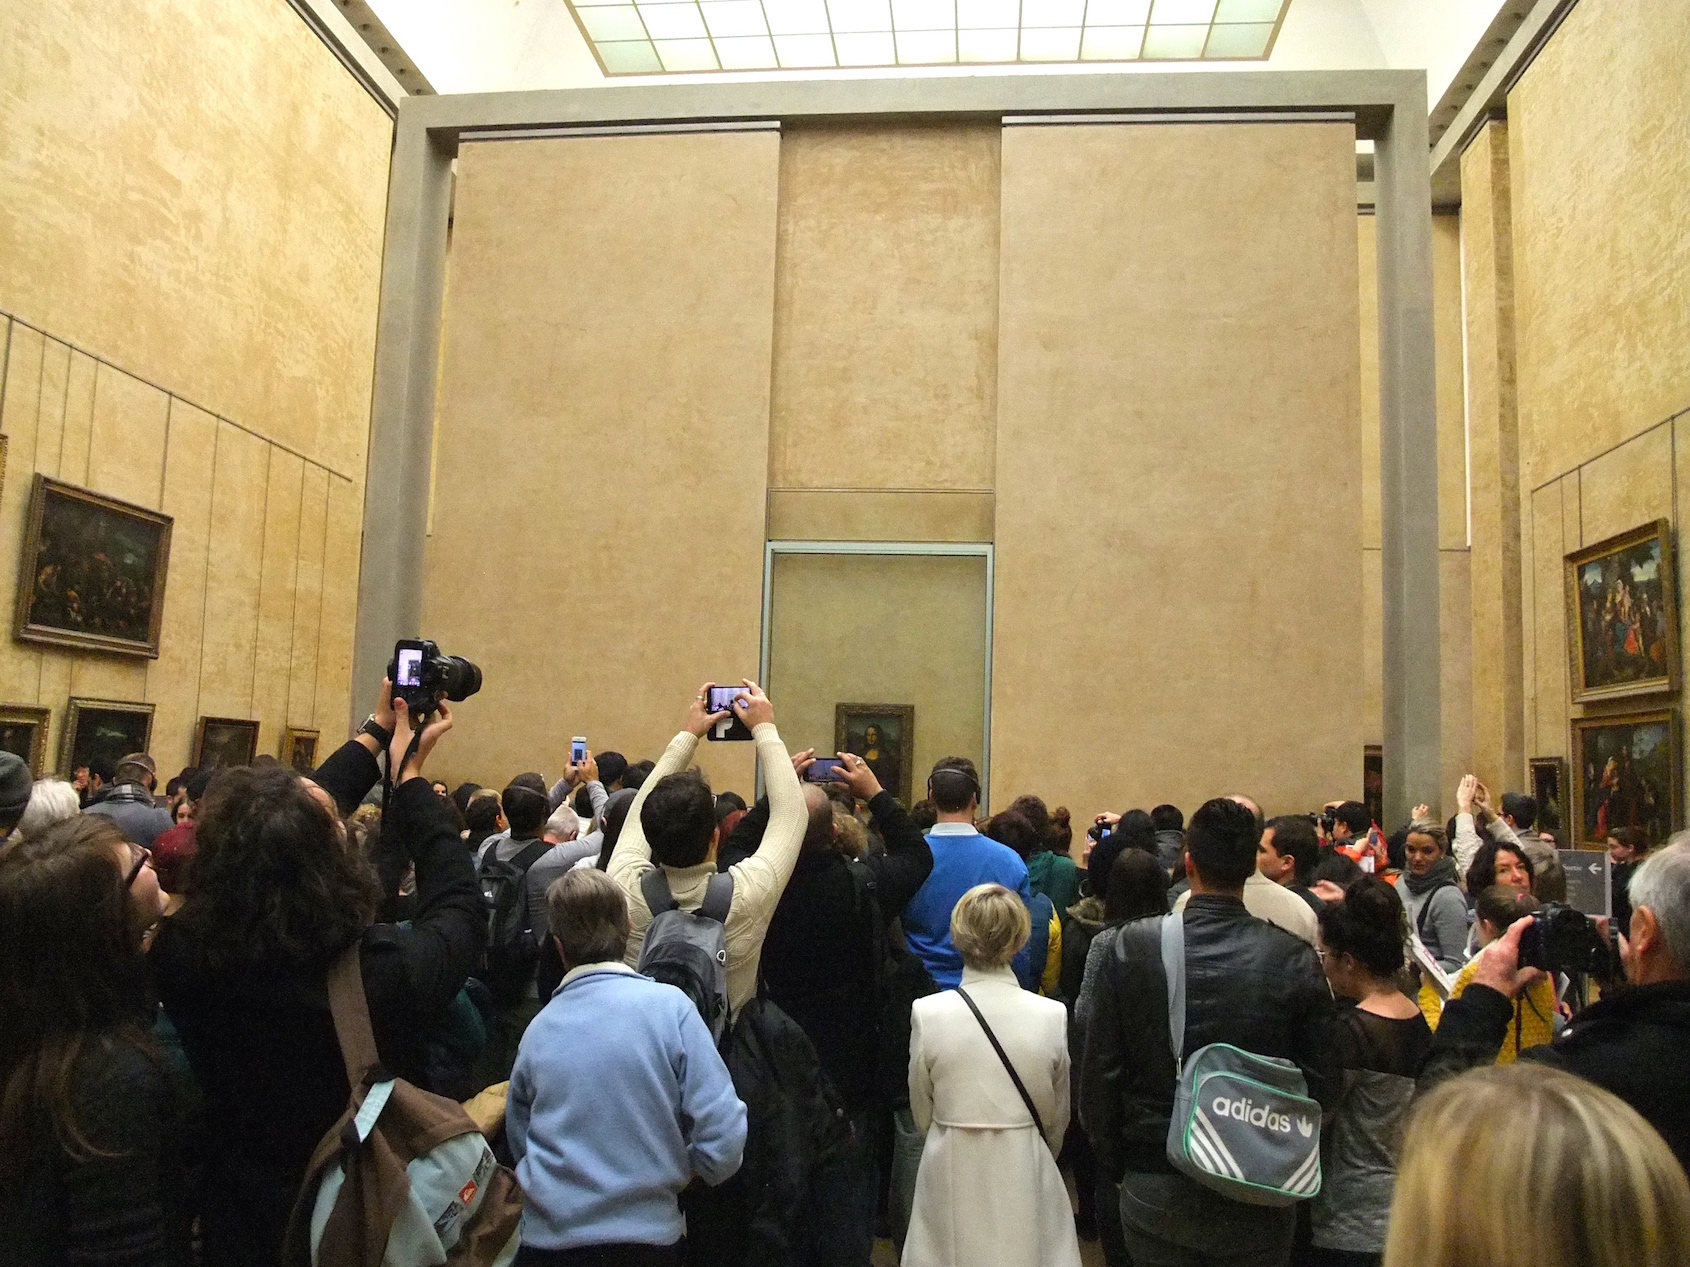 The crowd in front of the Mona Lisa at the  Louvre